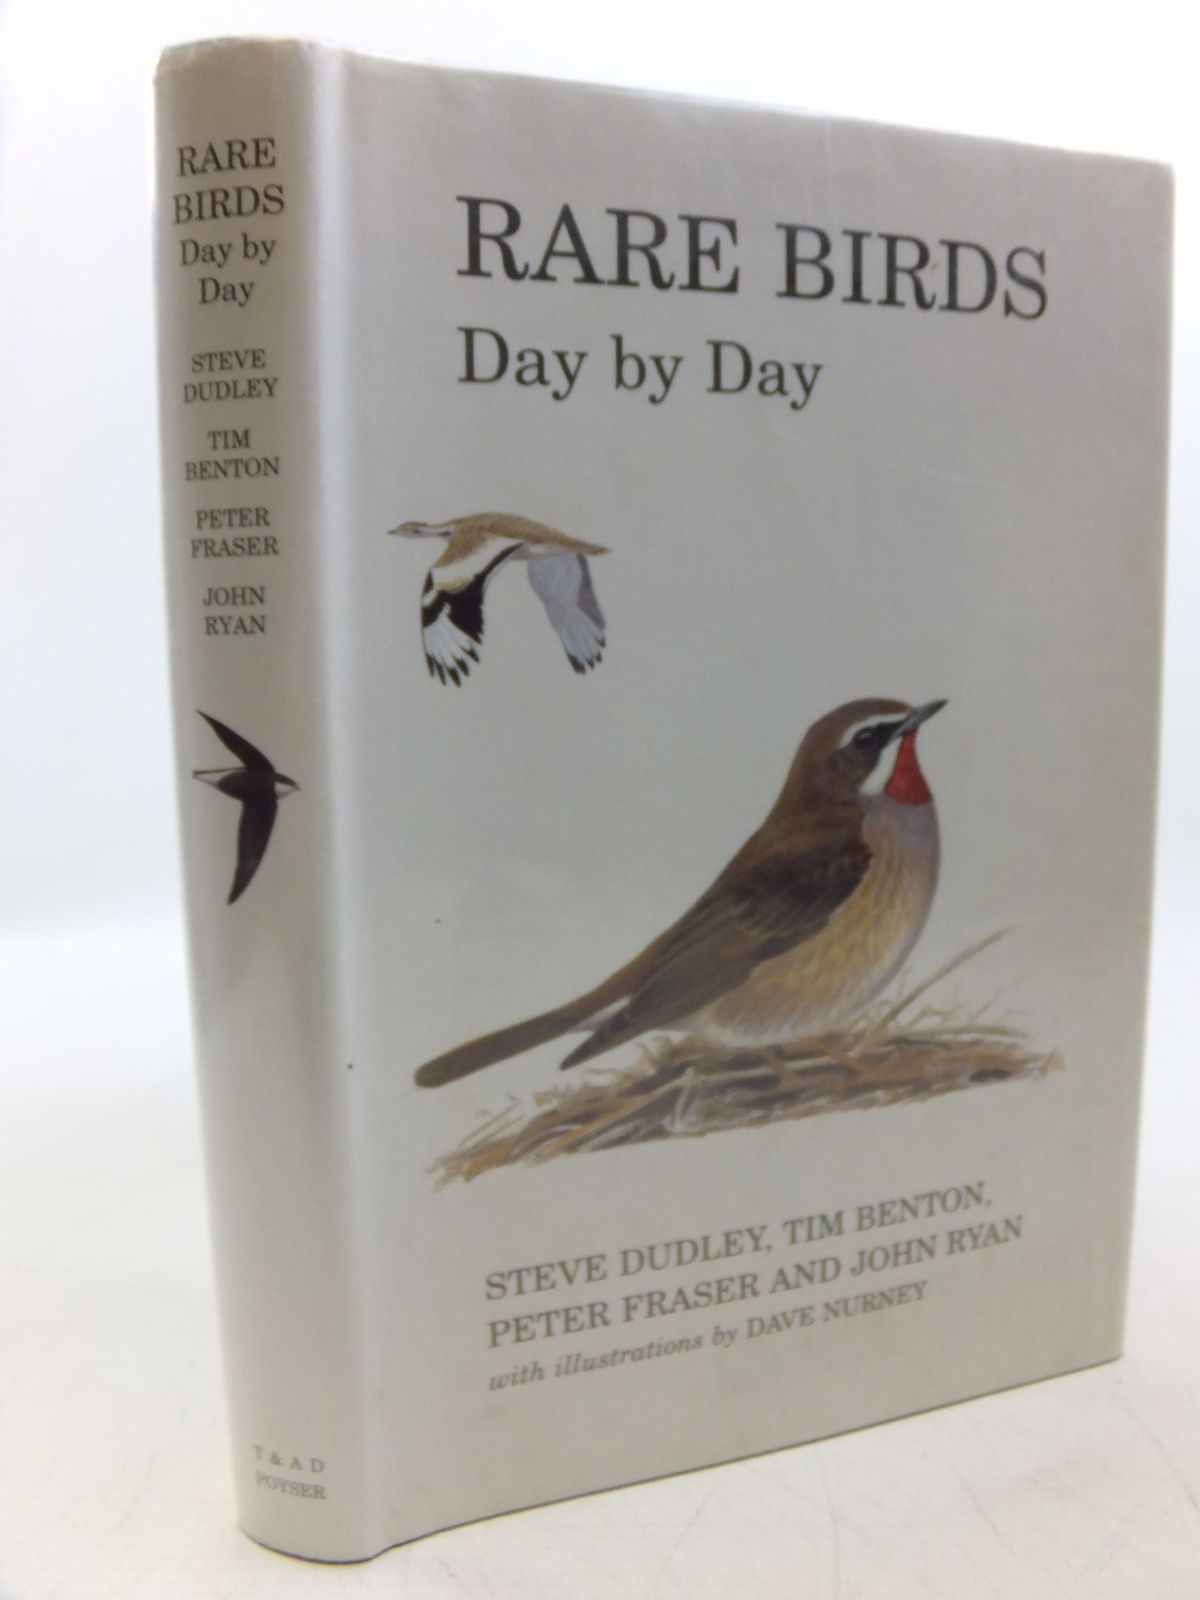 Photo of RARE BIRDS DAY BY DAY written by Dudley, Steve<br />Benton, Tim<br />Fraser, Peter<br />Ryan, John illustrated by Nurney, Dave published by T. & A.D. Poyser (STOCK CODE: 2118567)  for sale by Stella & Rose's Books